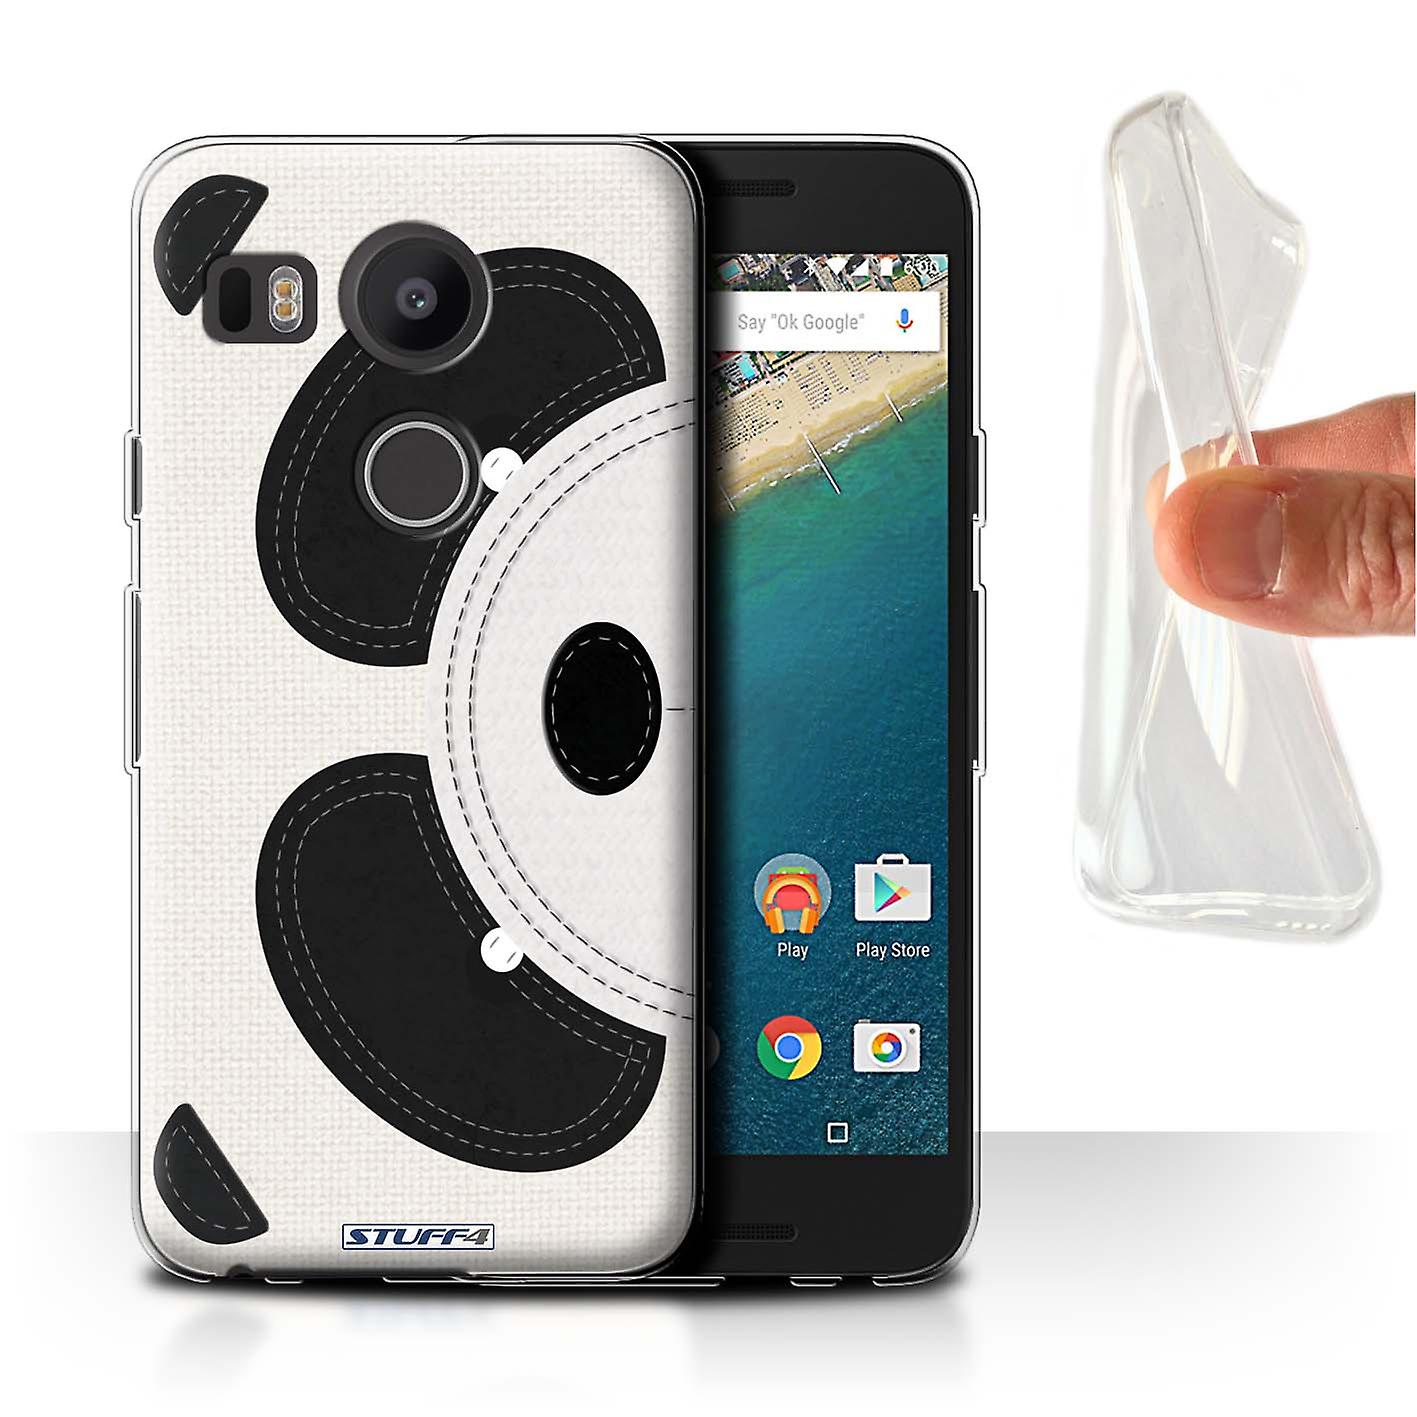 STUFF4 Gel/TPU Case/Cover for LG Nexus 5X/Panda/Animal Stitch Effect